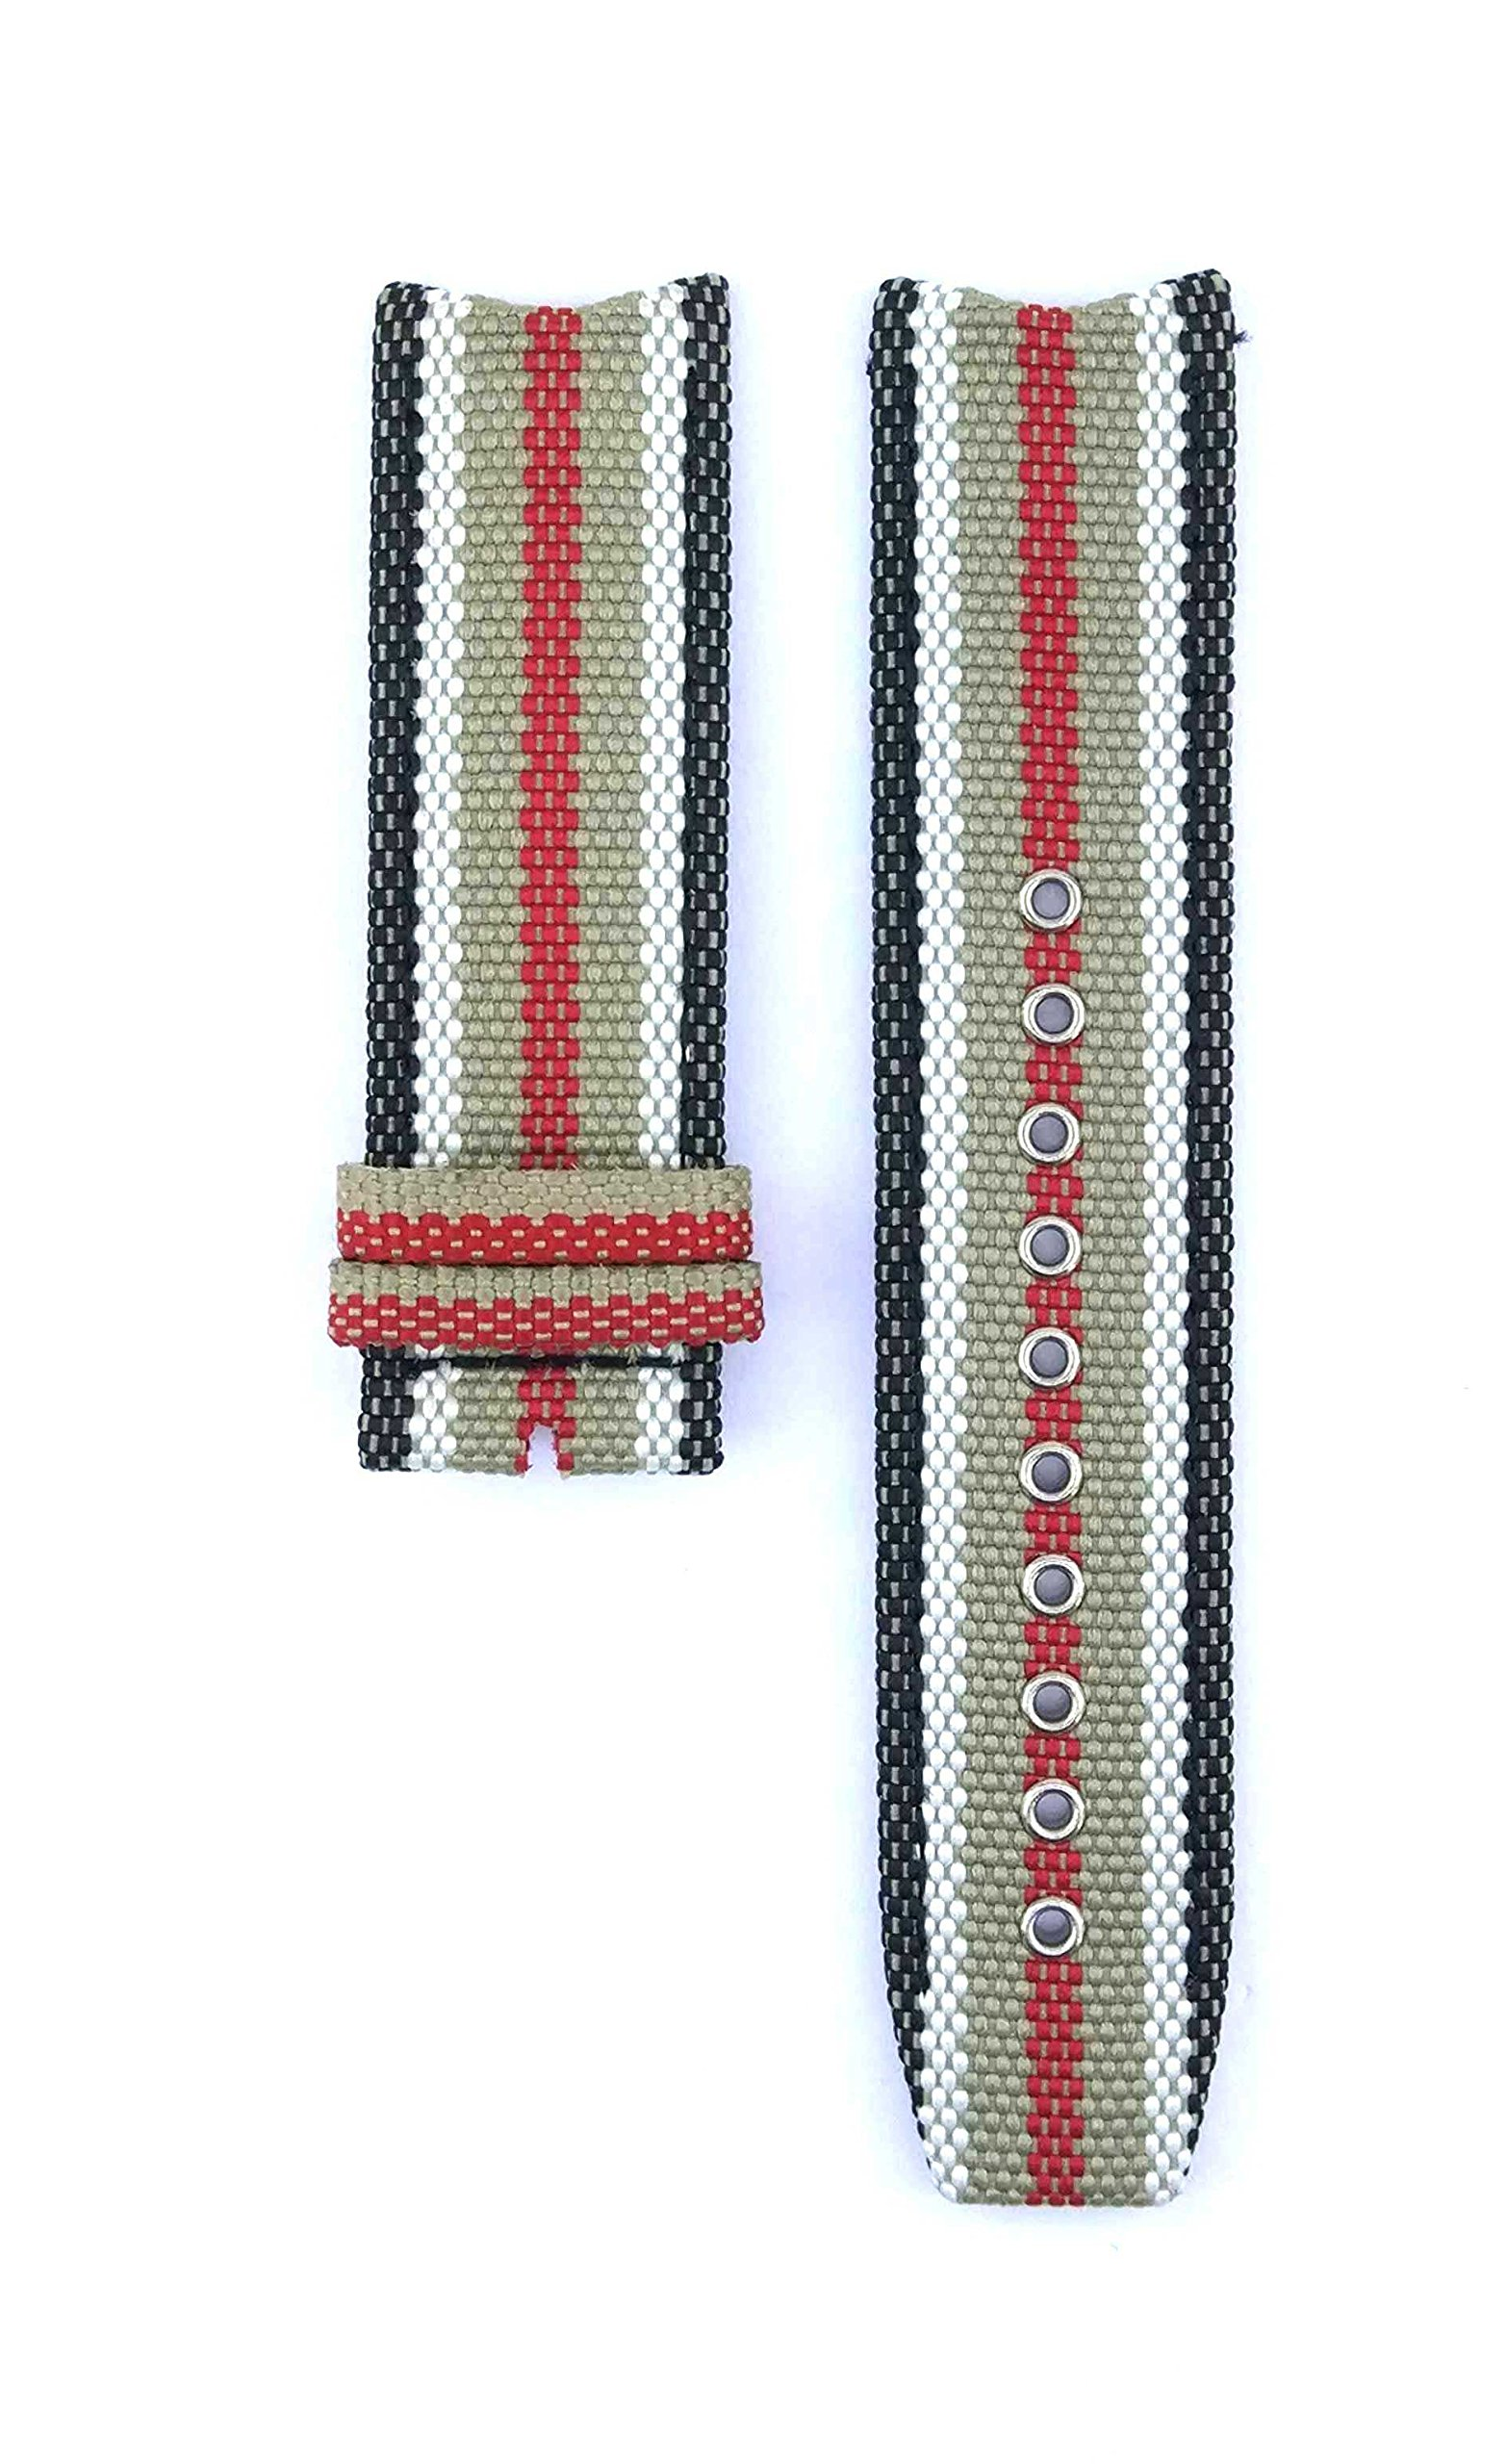 22mm Multicolor Textile Plated Leather Watch Band Strap For Endurance Chronograph BU7601 Watches 473BRR